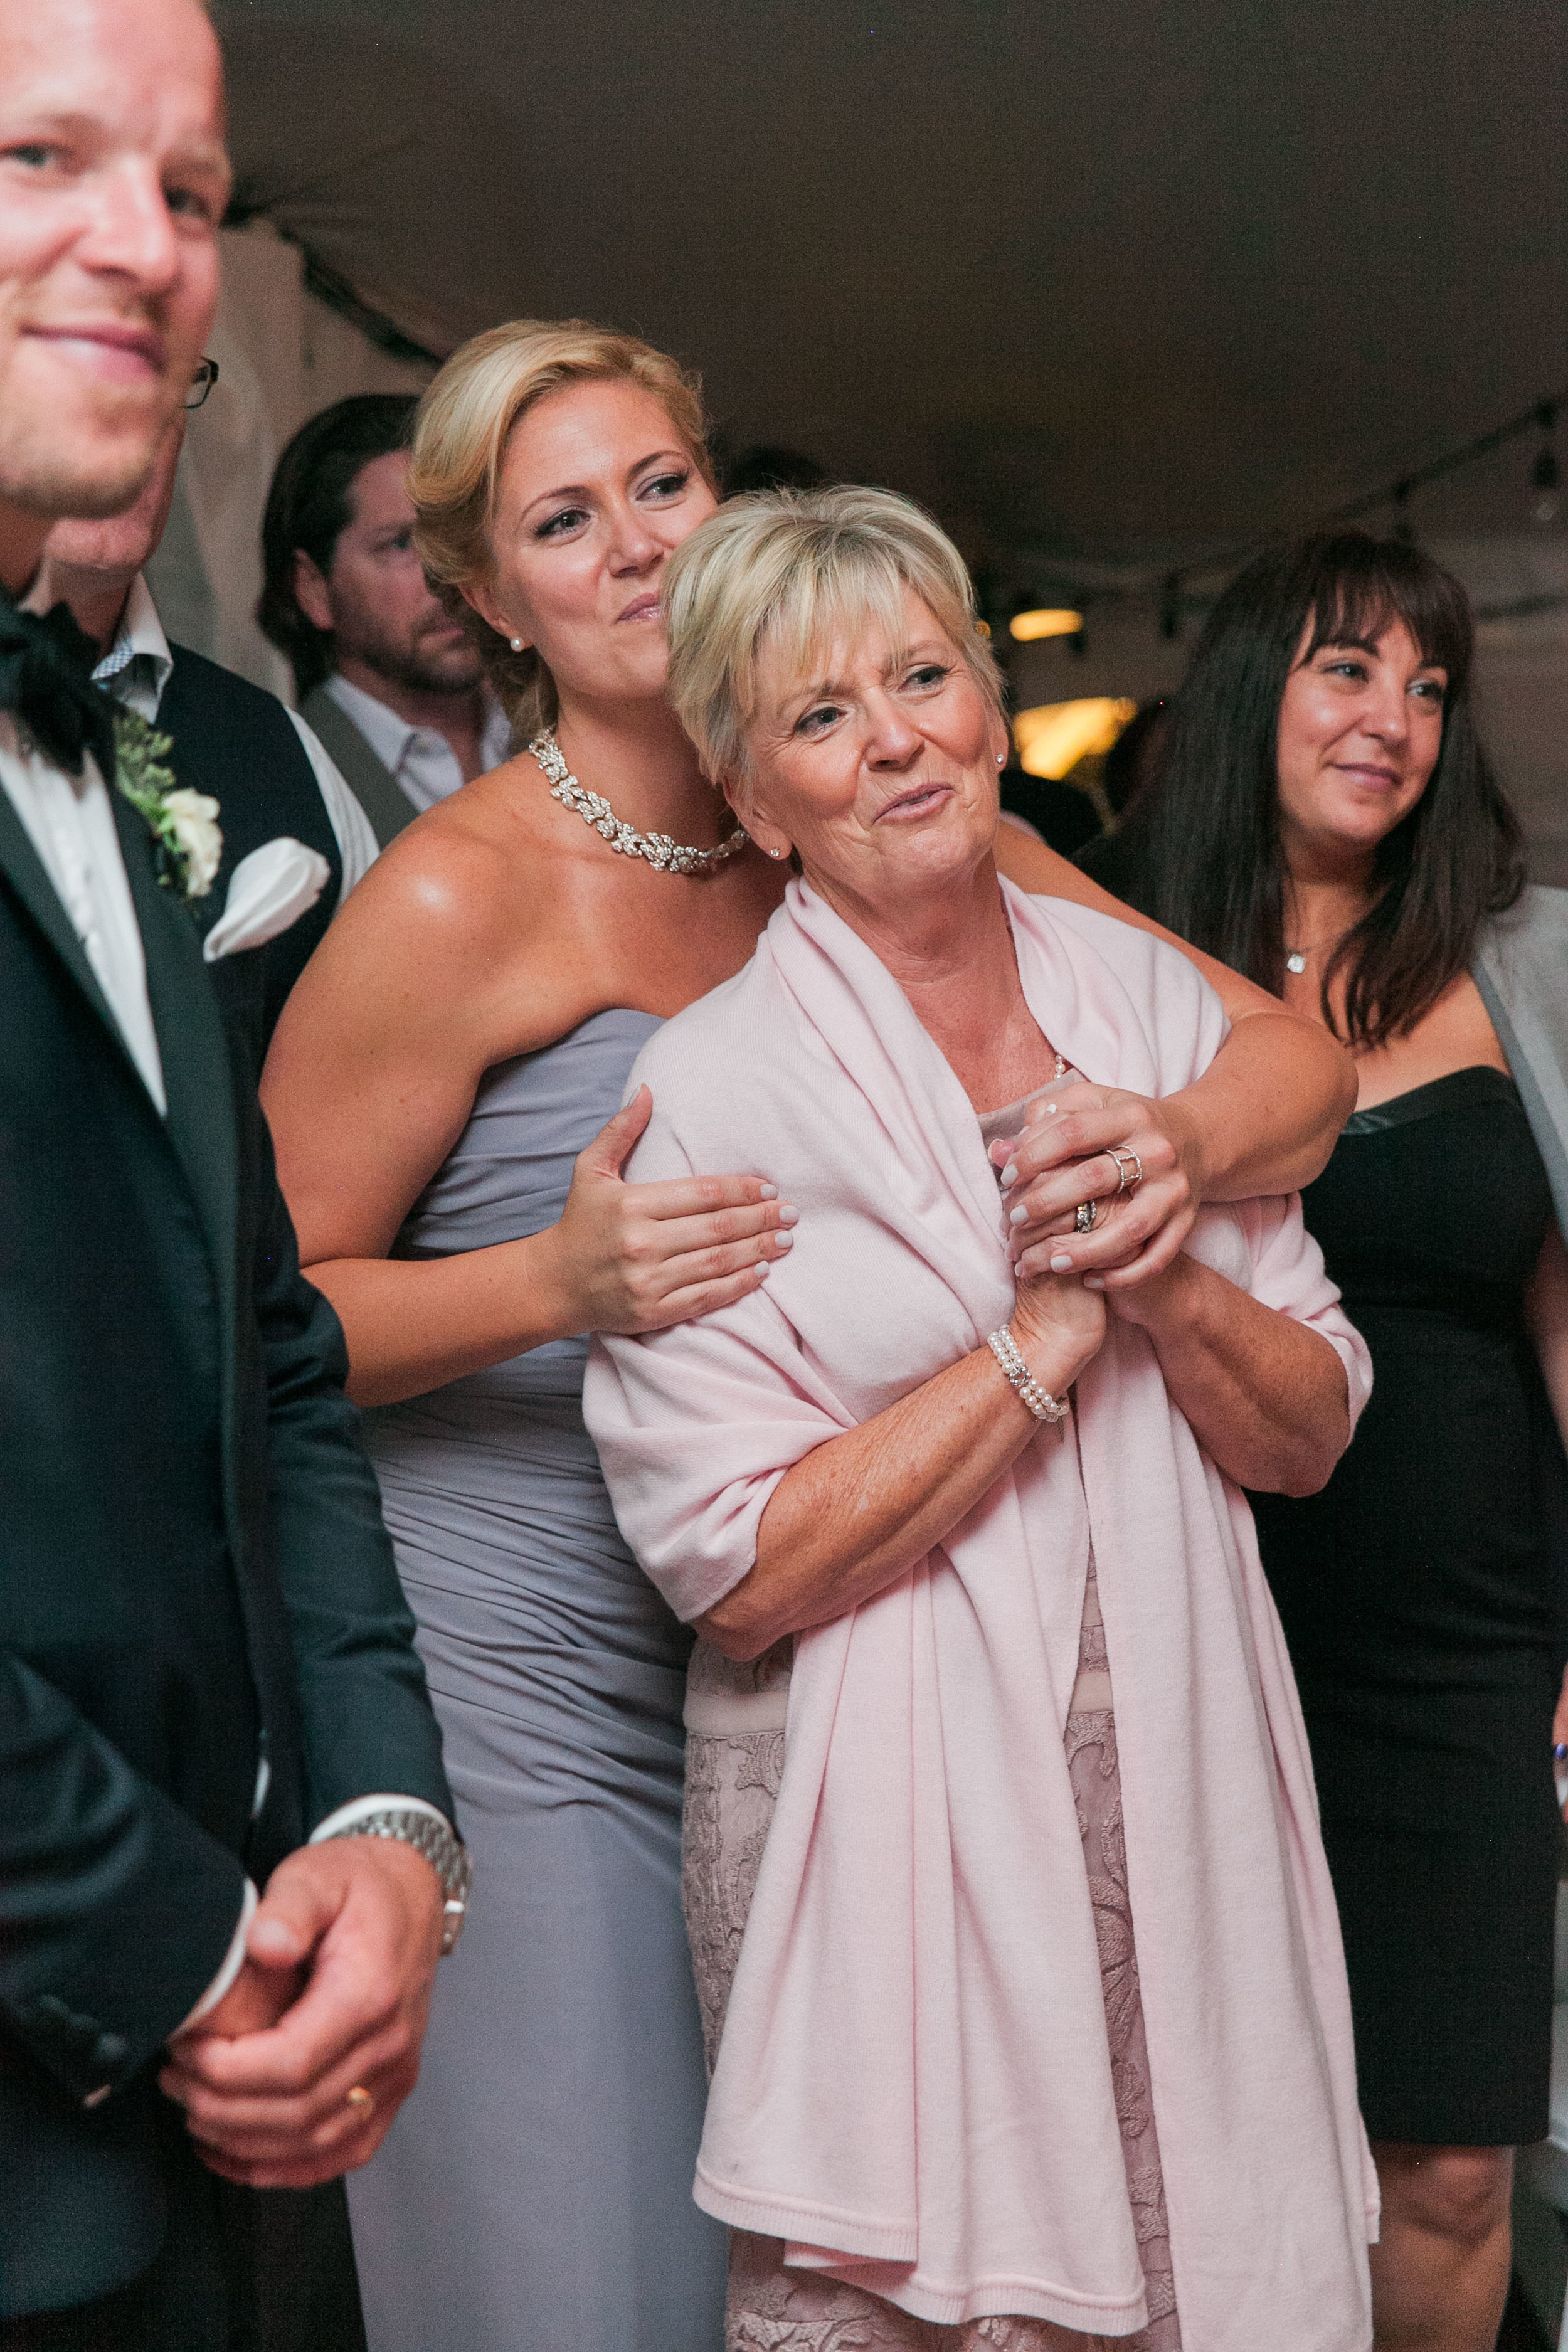 Mother of bride watching father daughter dance